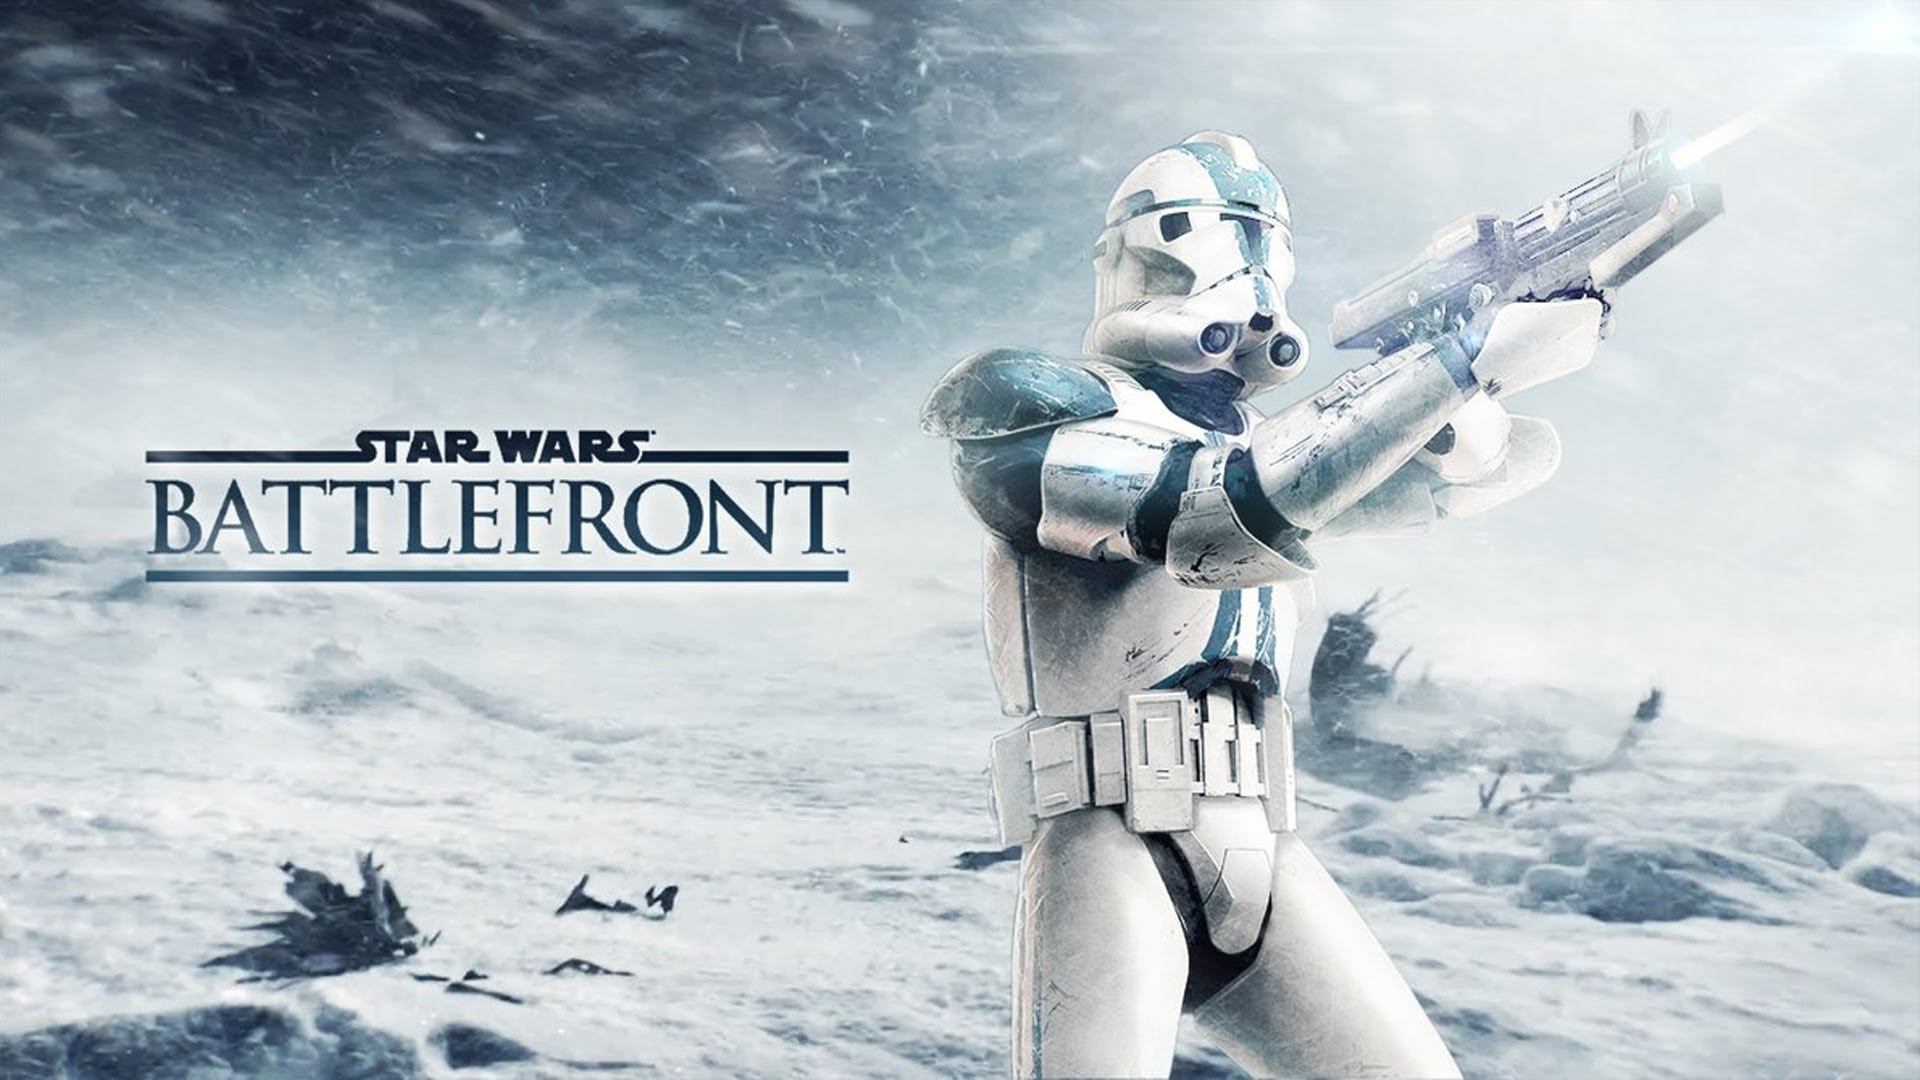 Мировая преьмера Star Wars Battlefront намечена на апрель